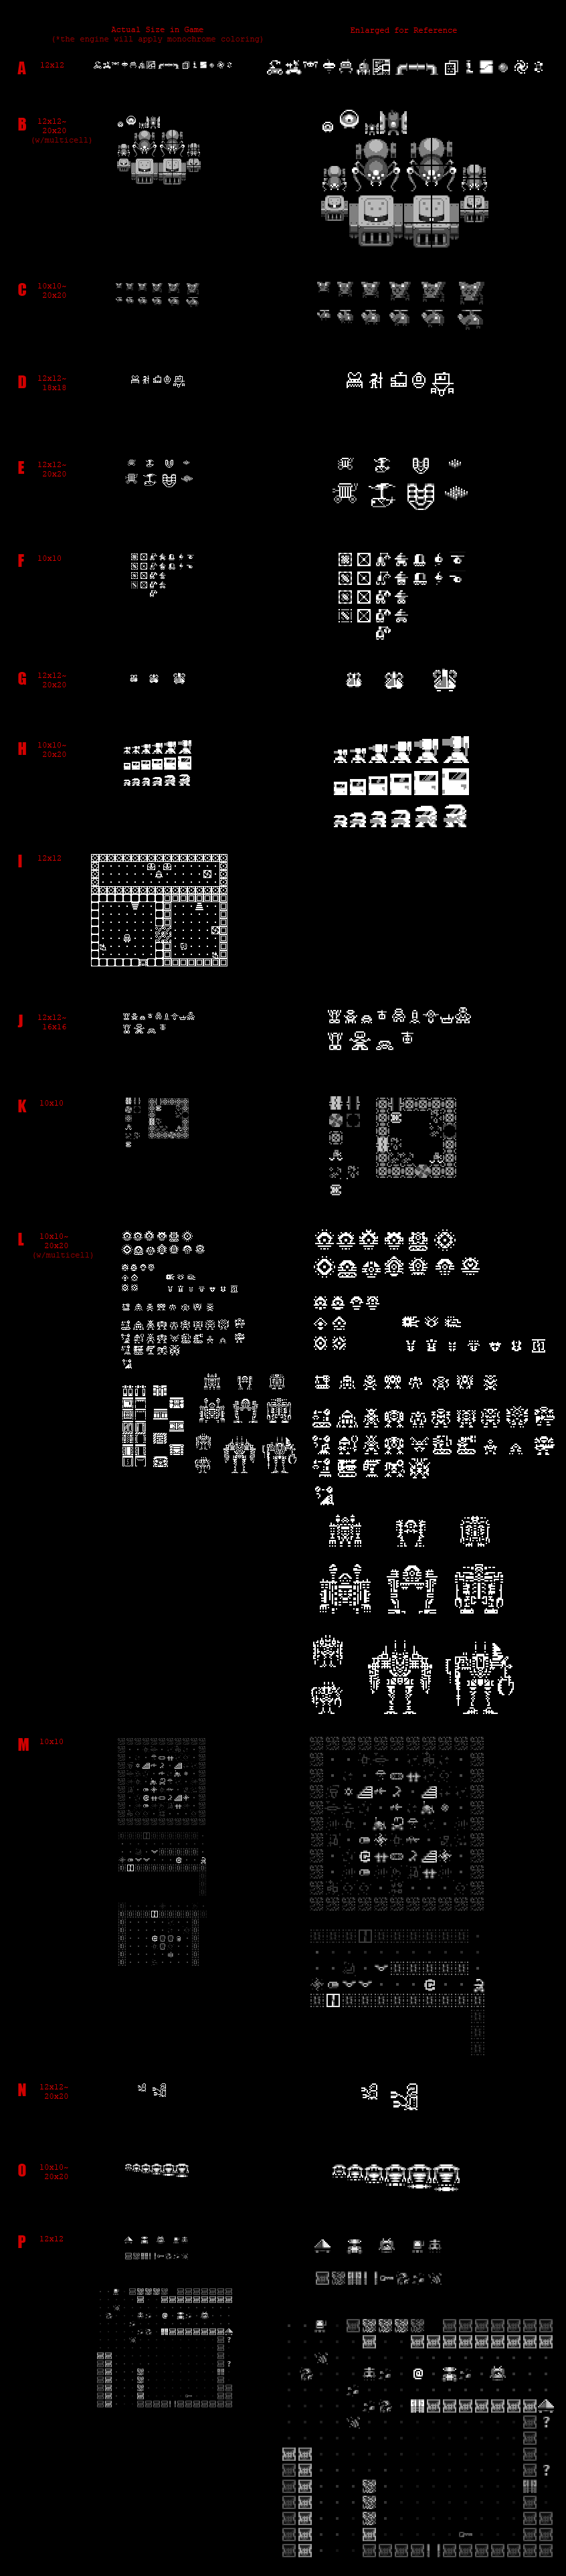 cogmind_tileset_concepts1